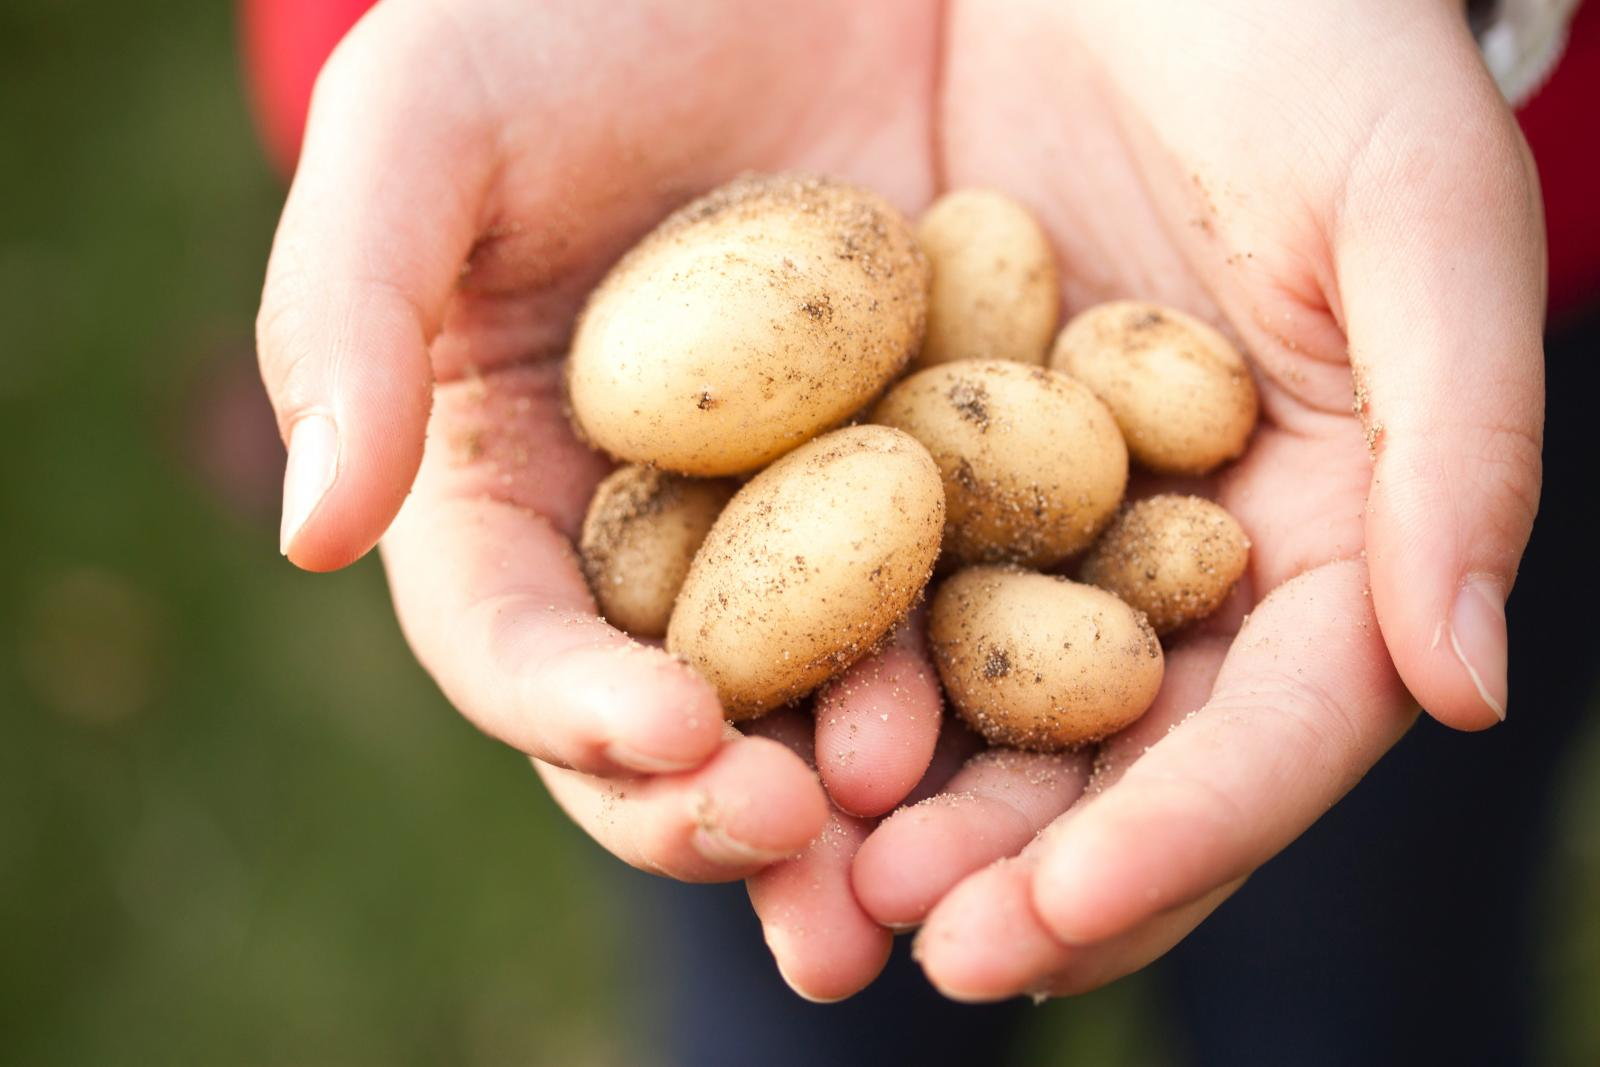 Growing potatoes. Photo credit: Pexels